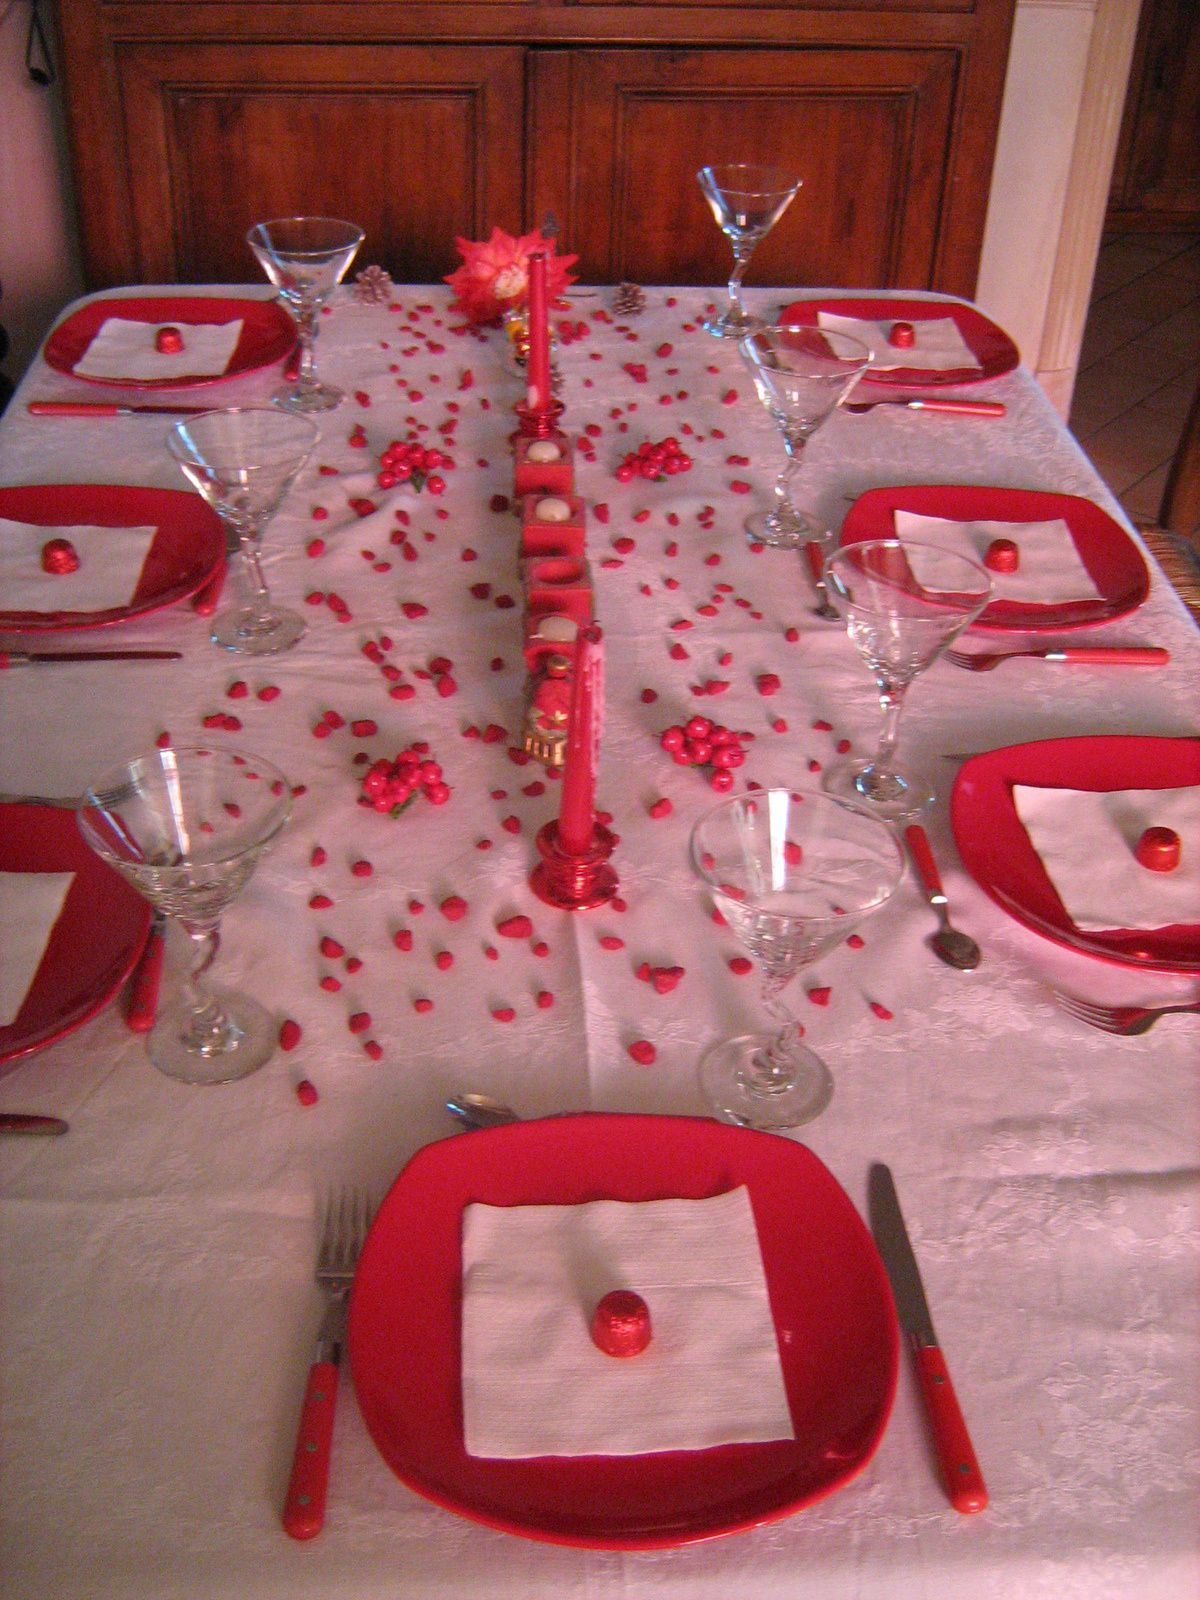 #B01B2E TABLE DE NOEL EN ROUGE ET BLANC 1 Table Et Déco D'Estelle 5505 decorations de noel rouge et blanc 1200x1600 px @ aertt.com